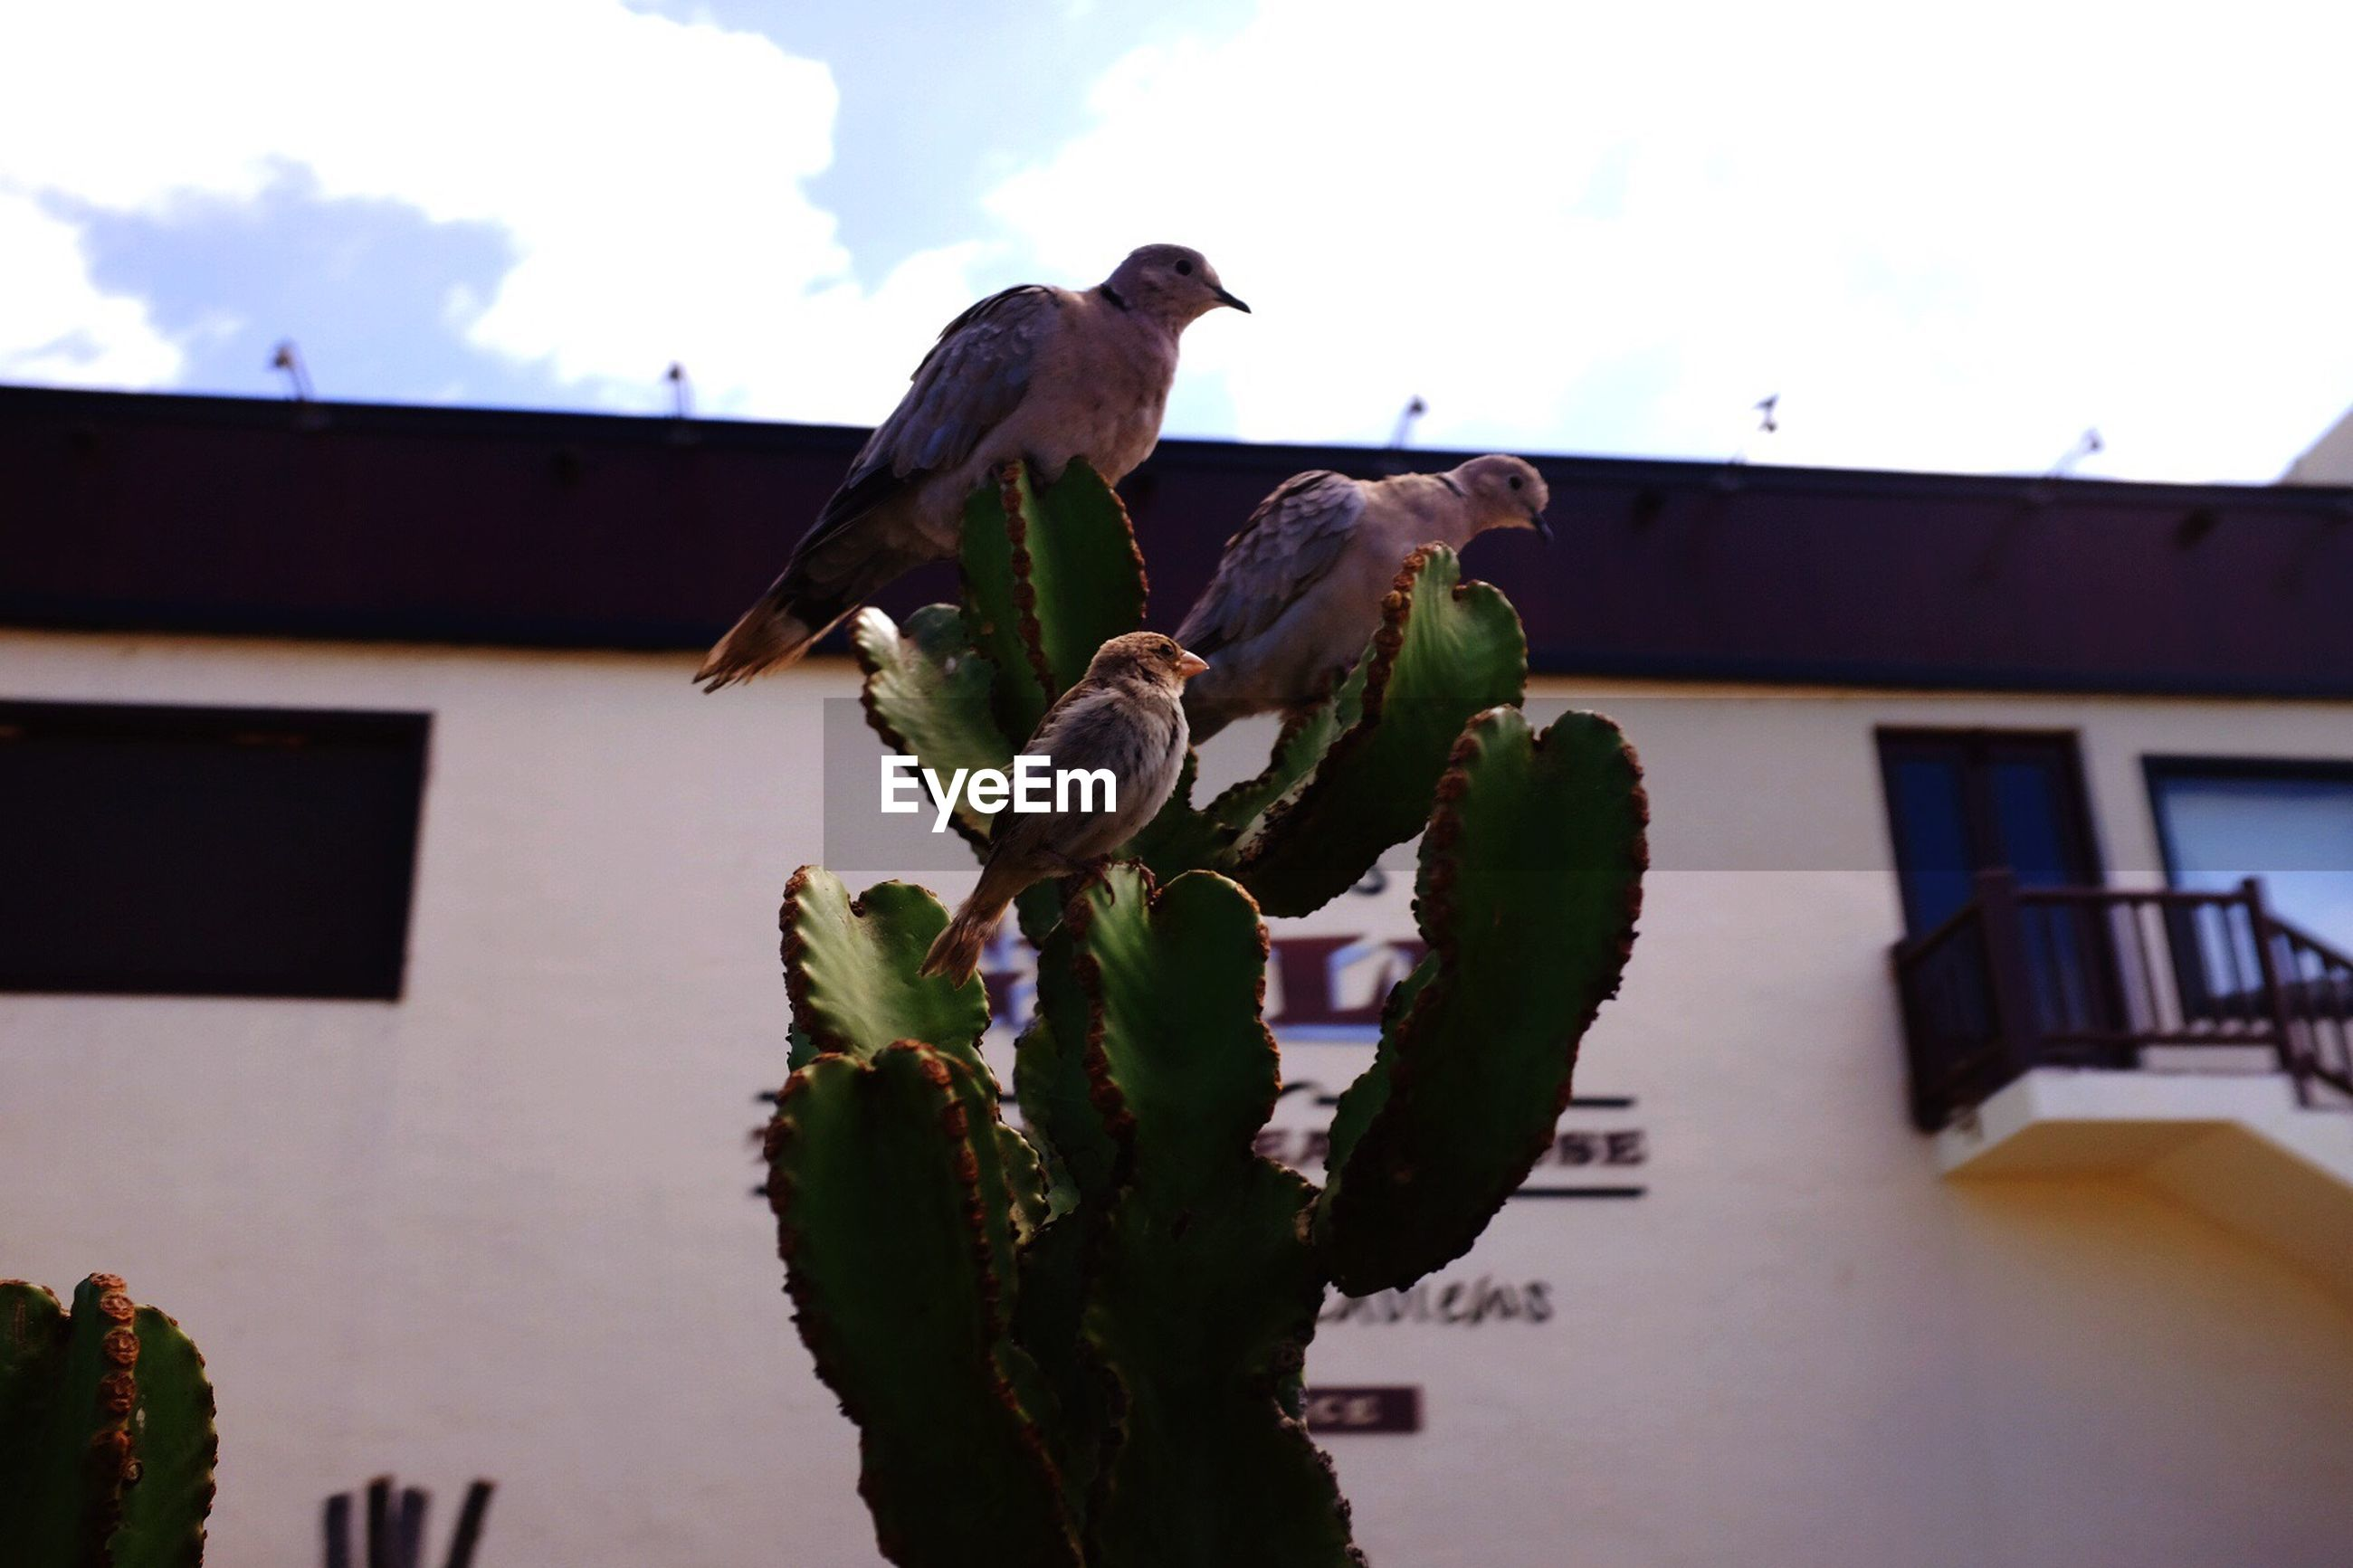 LOW ANGLE VIEW OF BIRDS PERCHING ON WALL